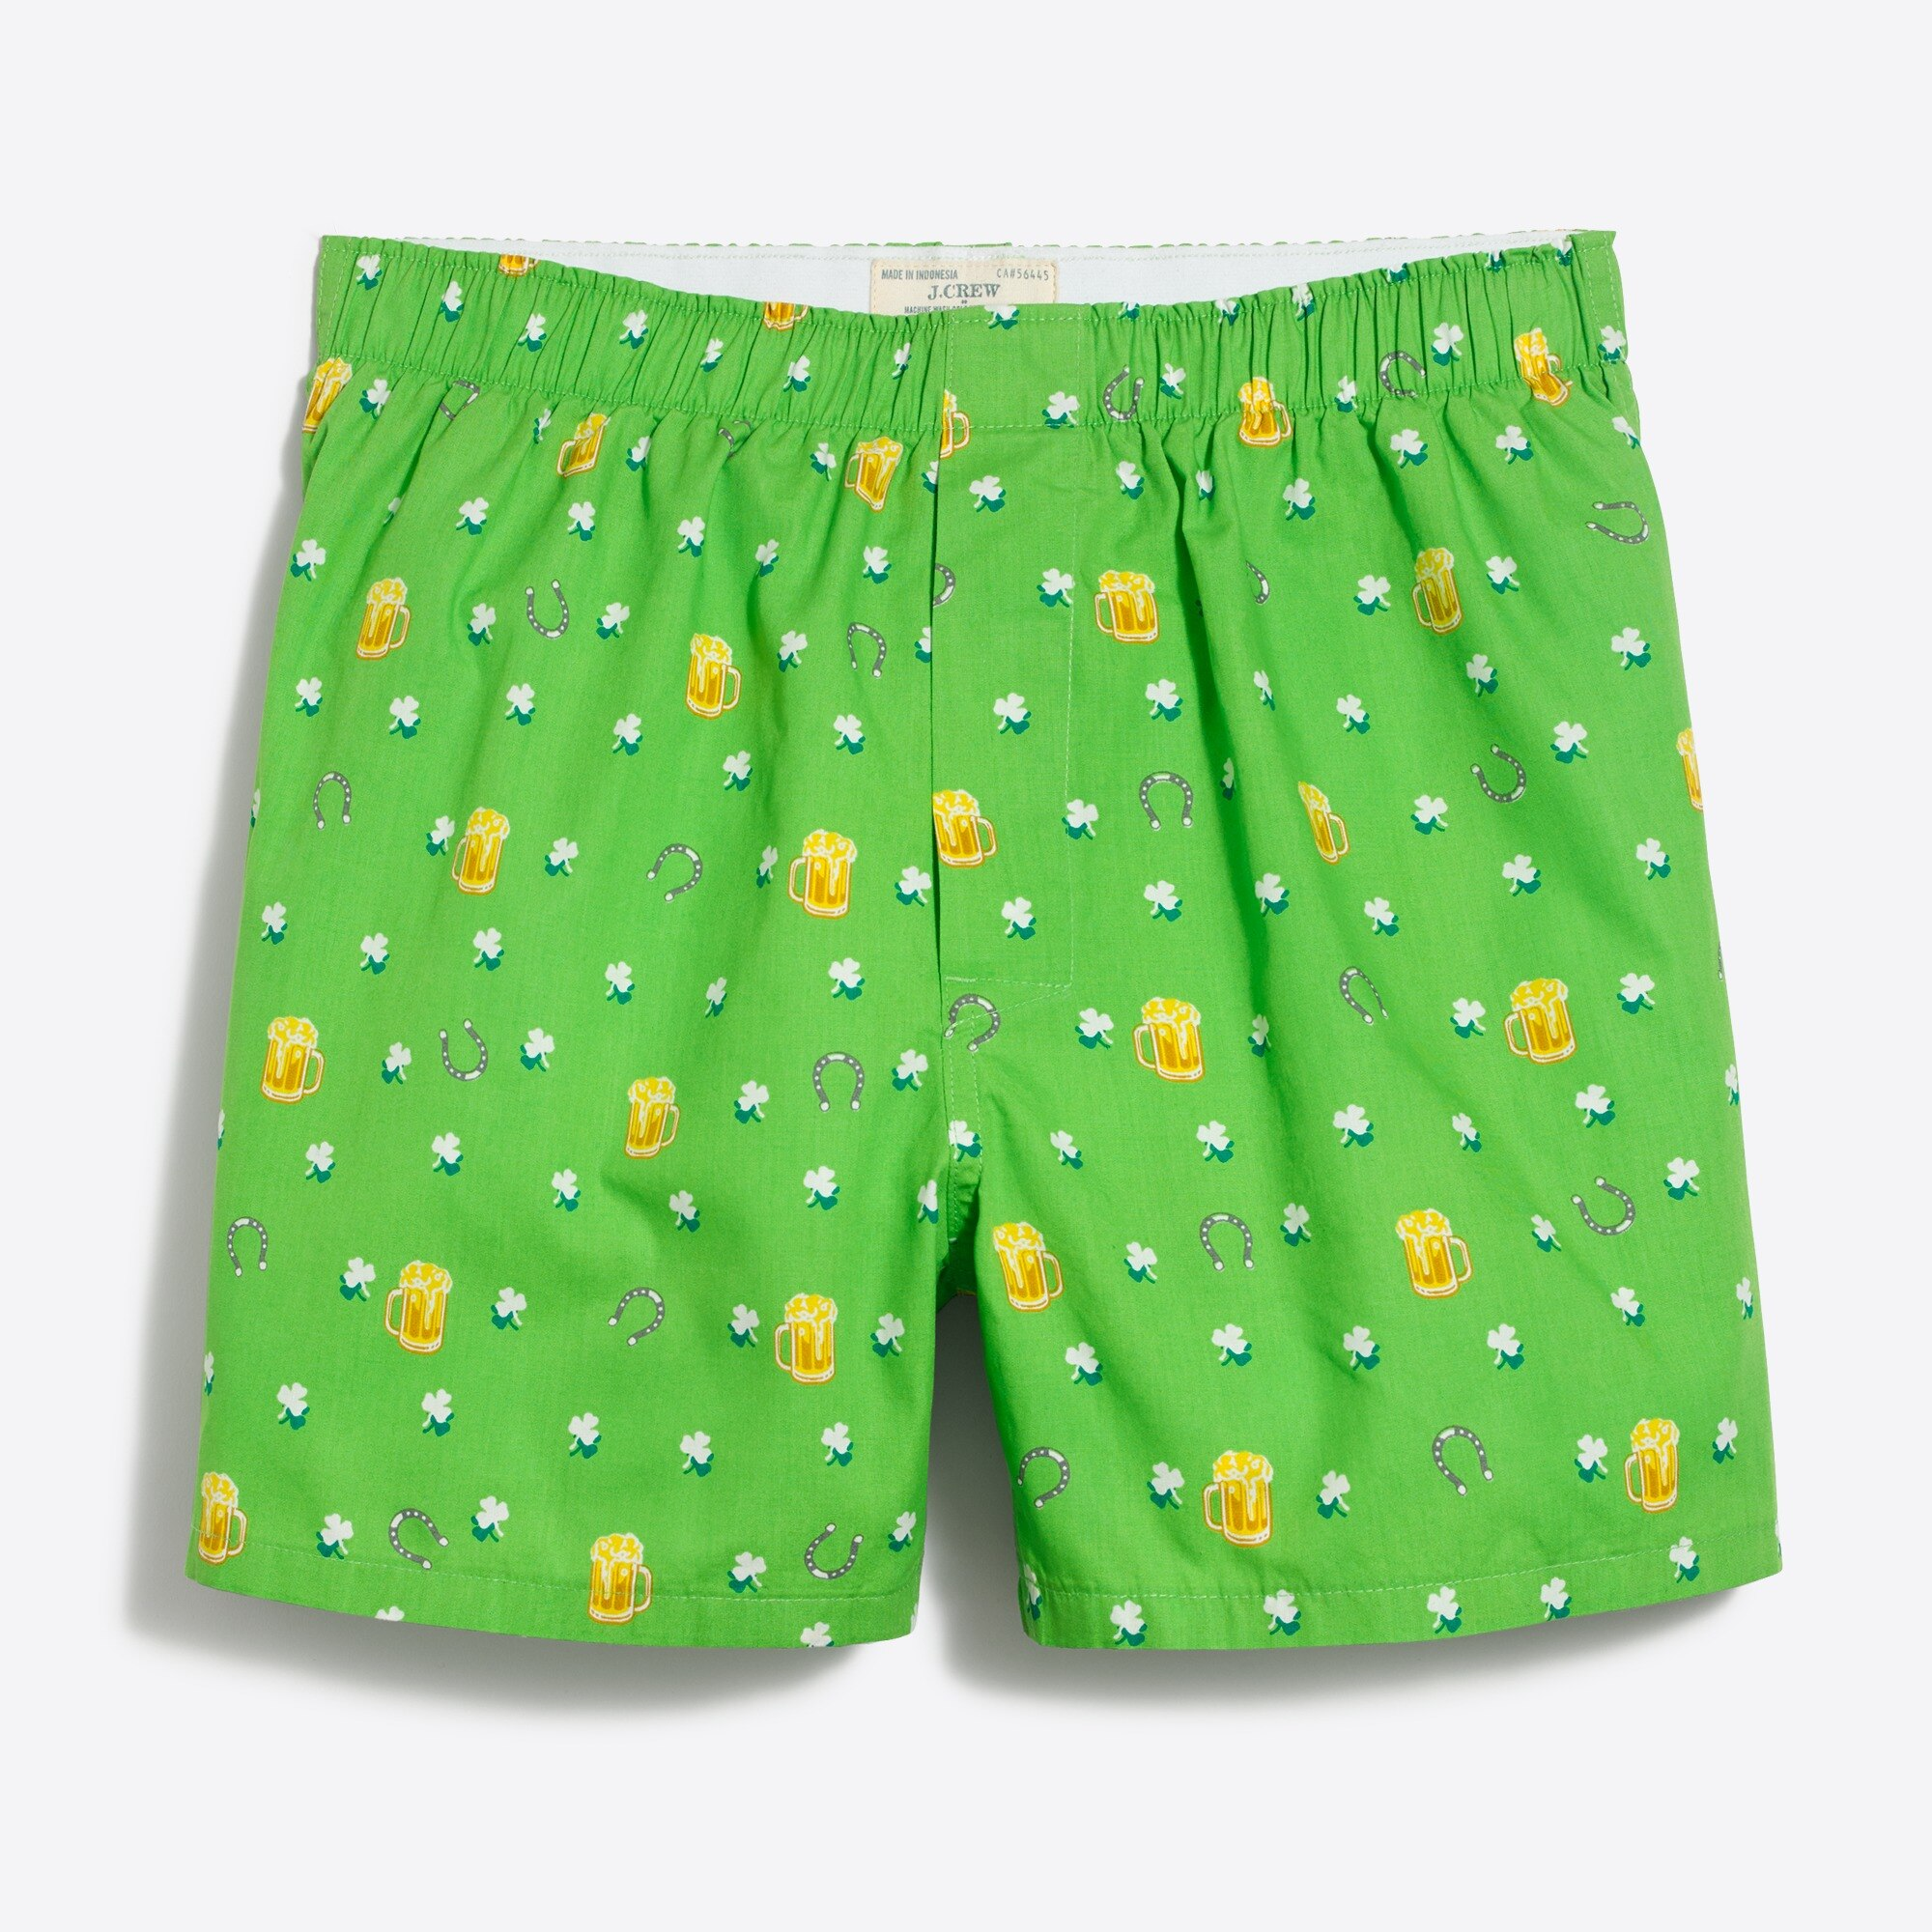 st. patty's day boxers : factorymen boxers